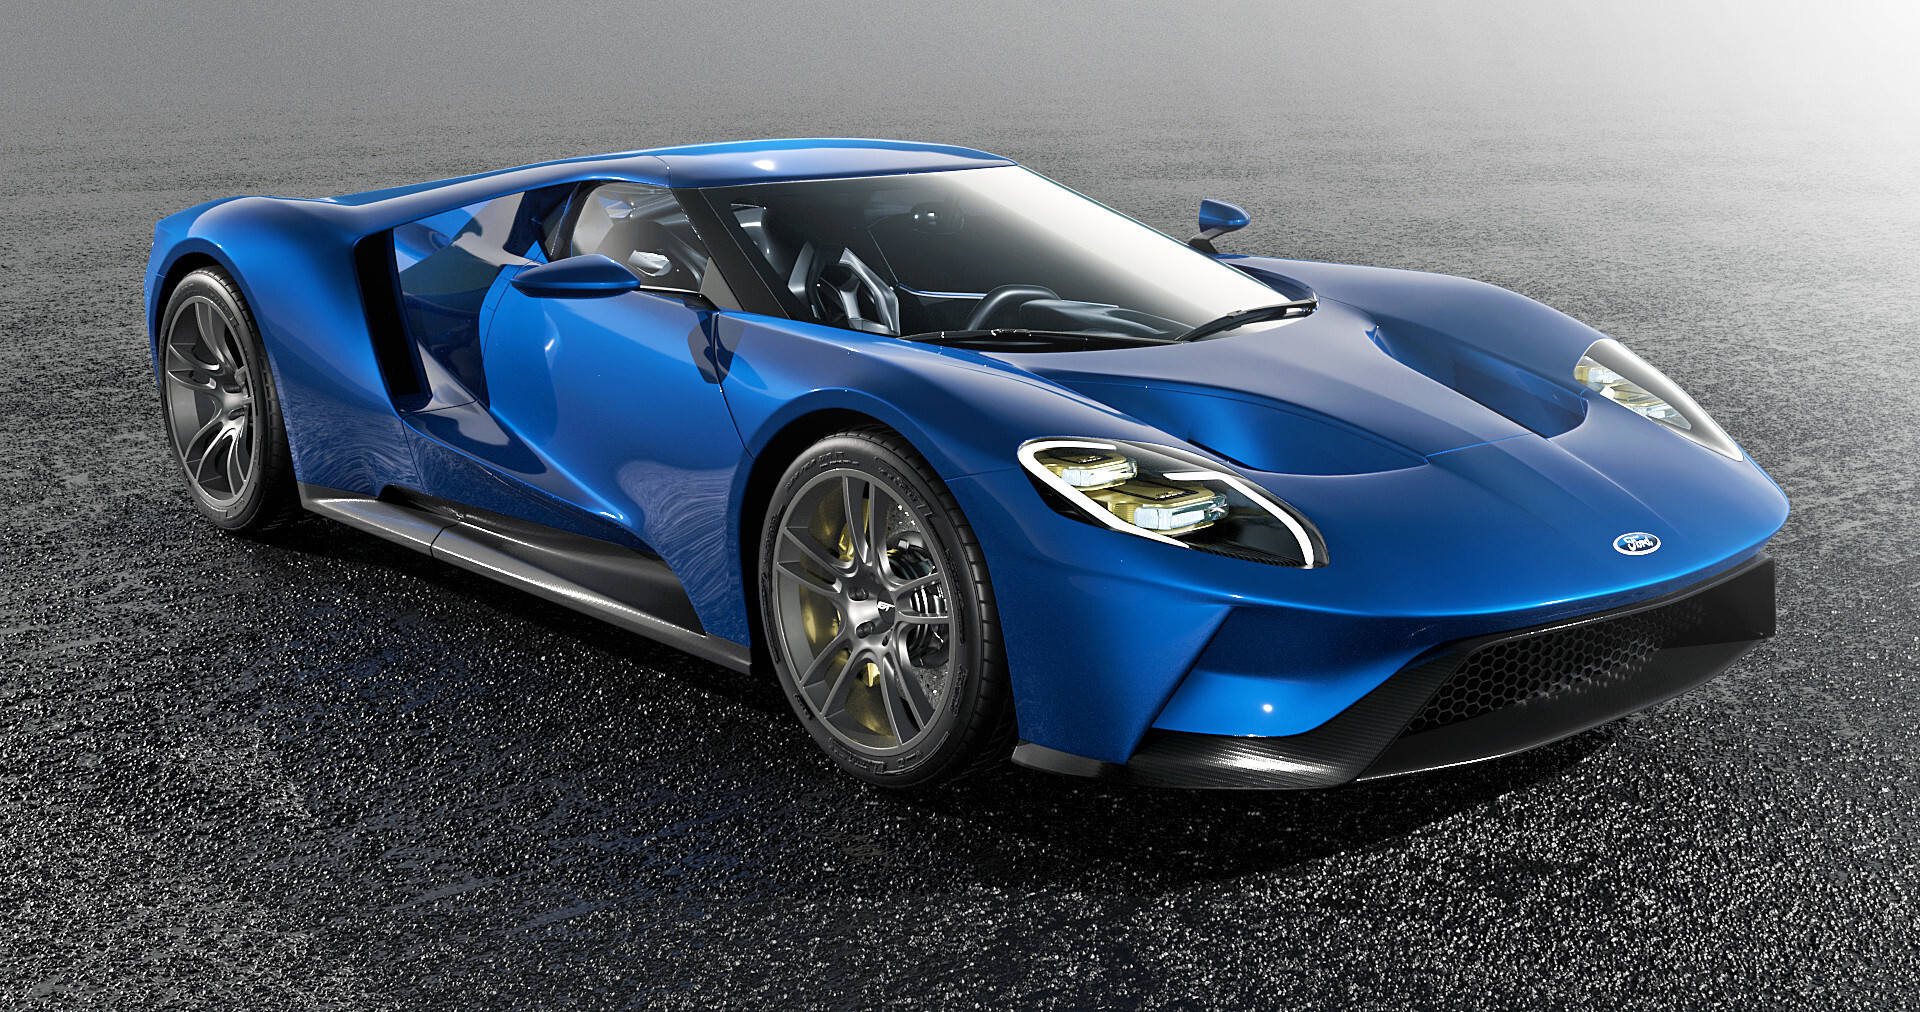 Sina mehralinia gryphiz ford gt 1 5f89a239 nuuq